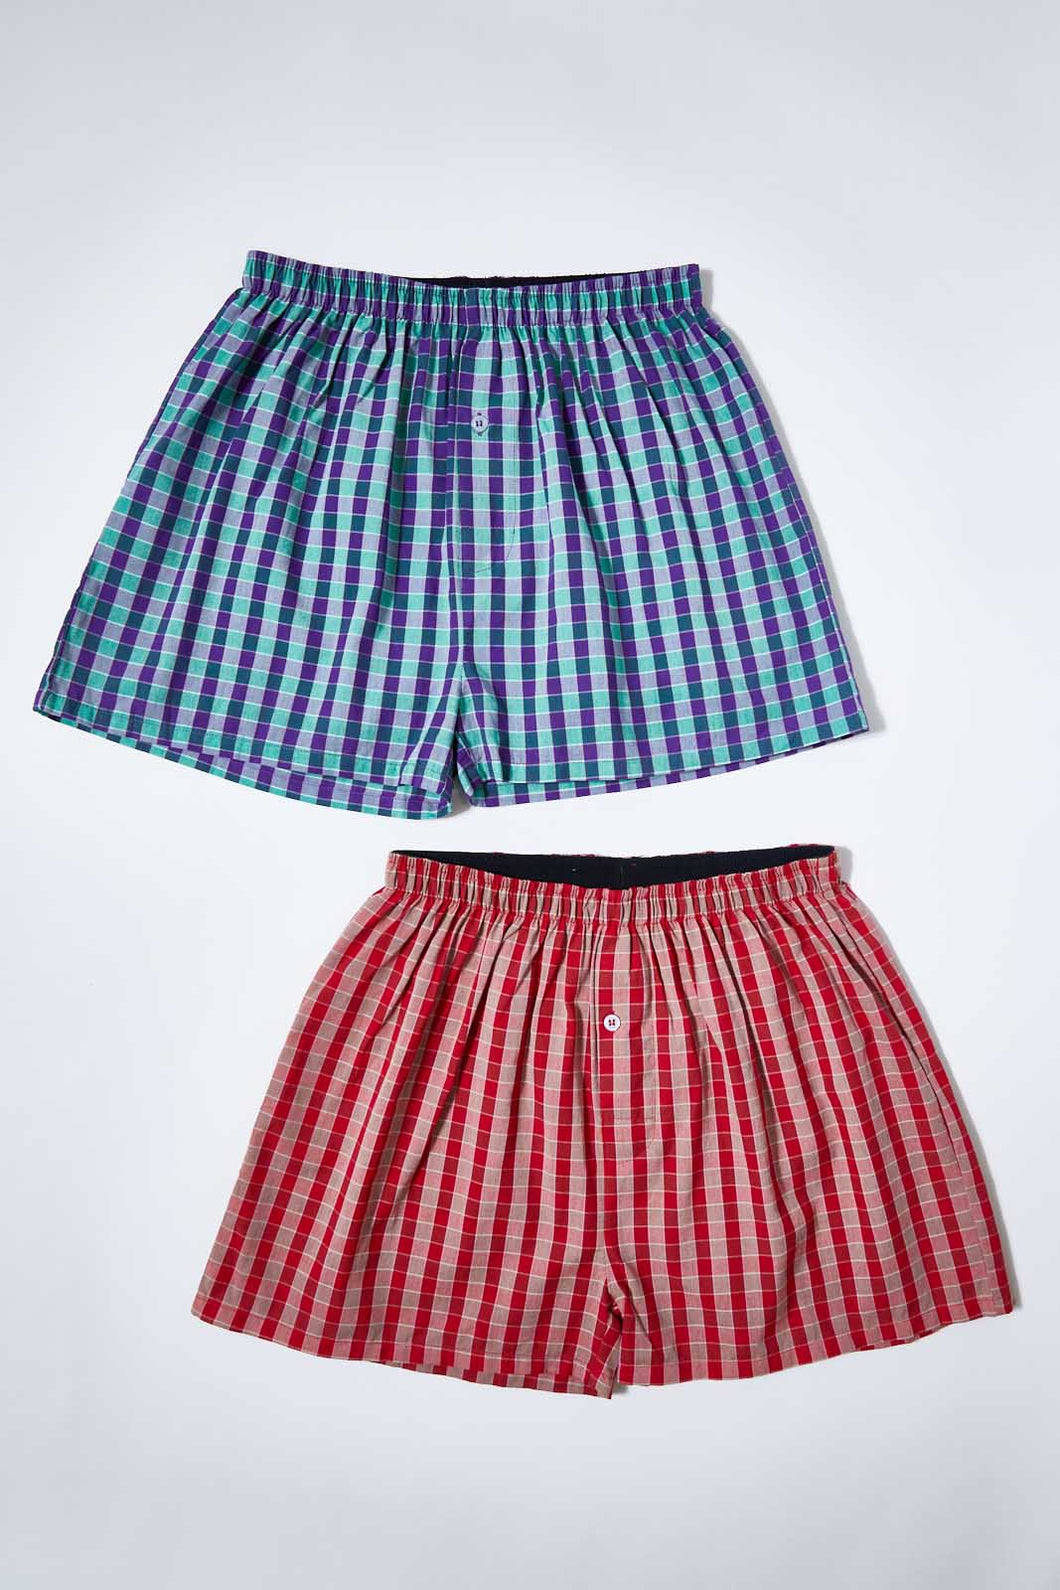 Red/Blue Woven Check Boxer Shorts (Pack of 2)